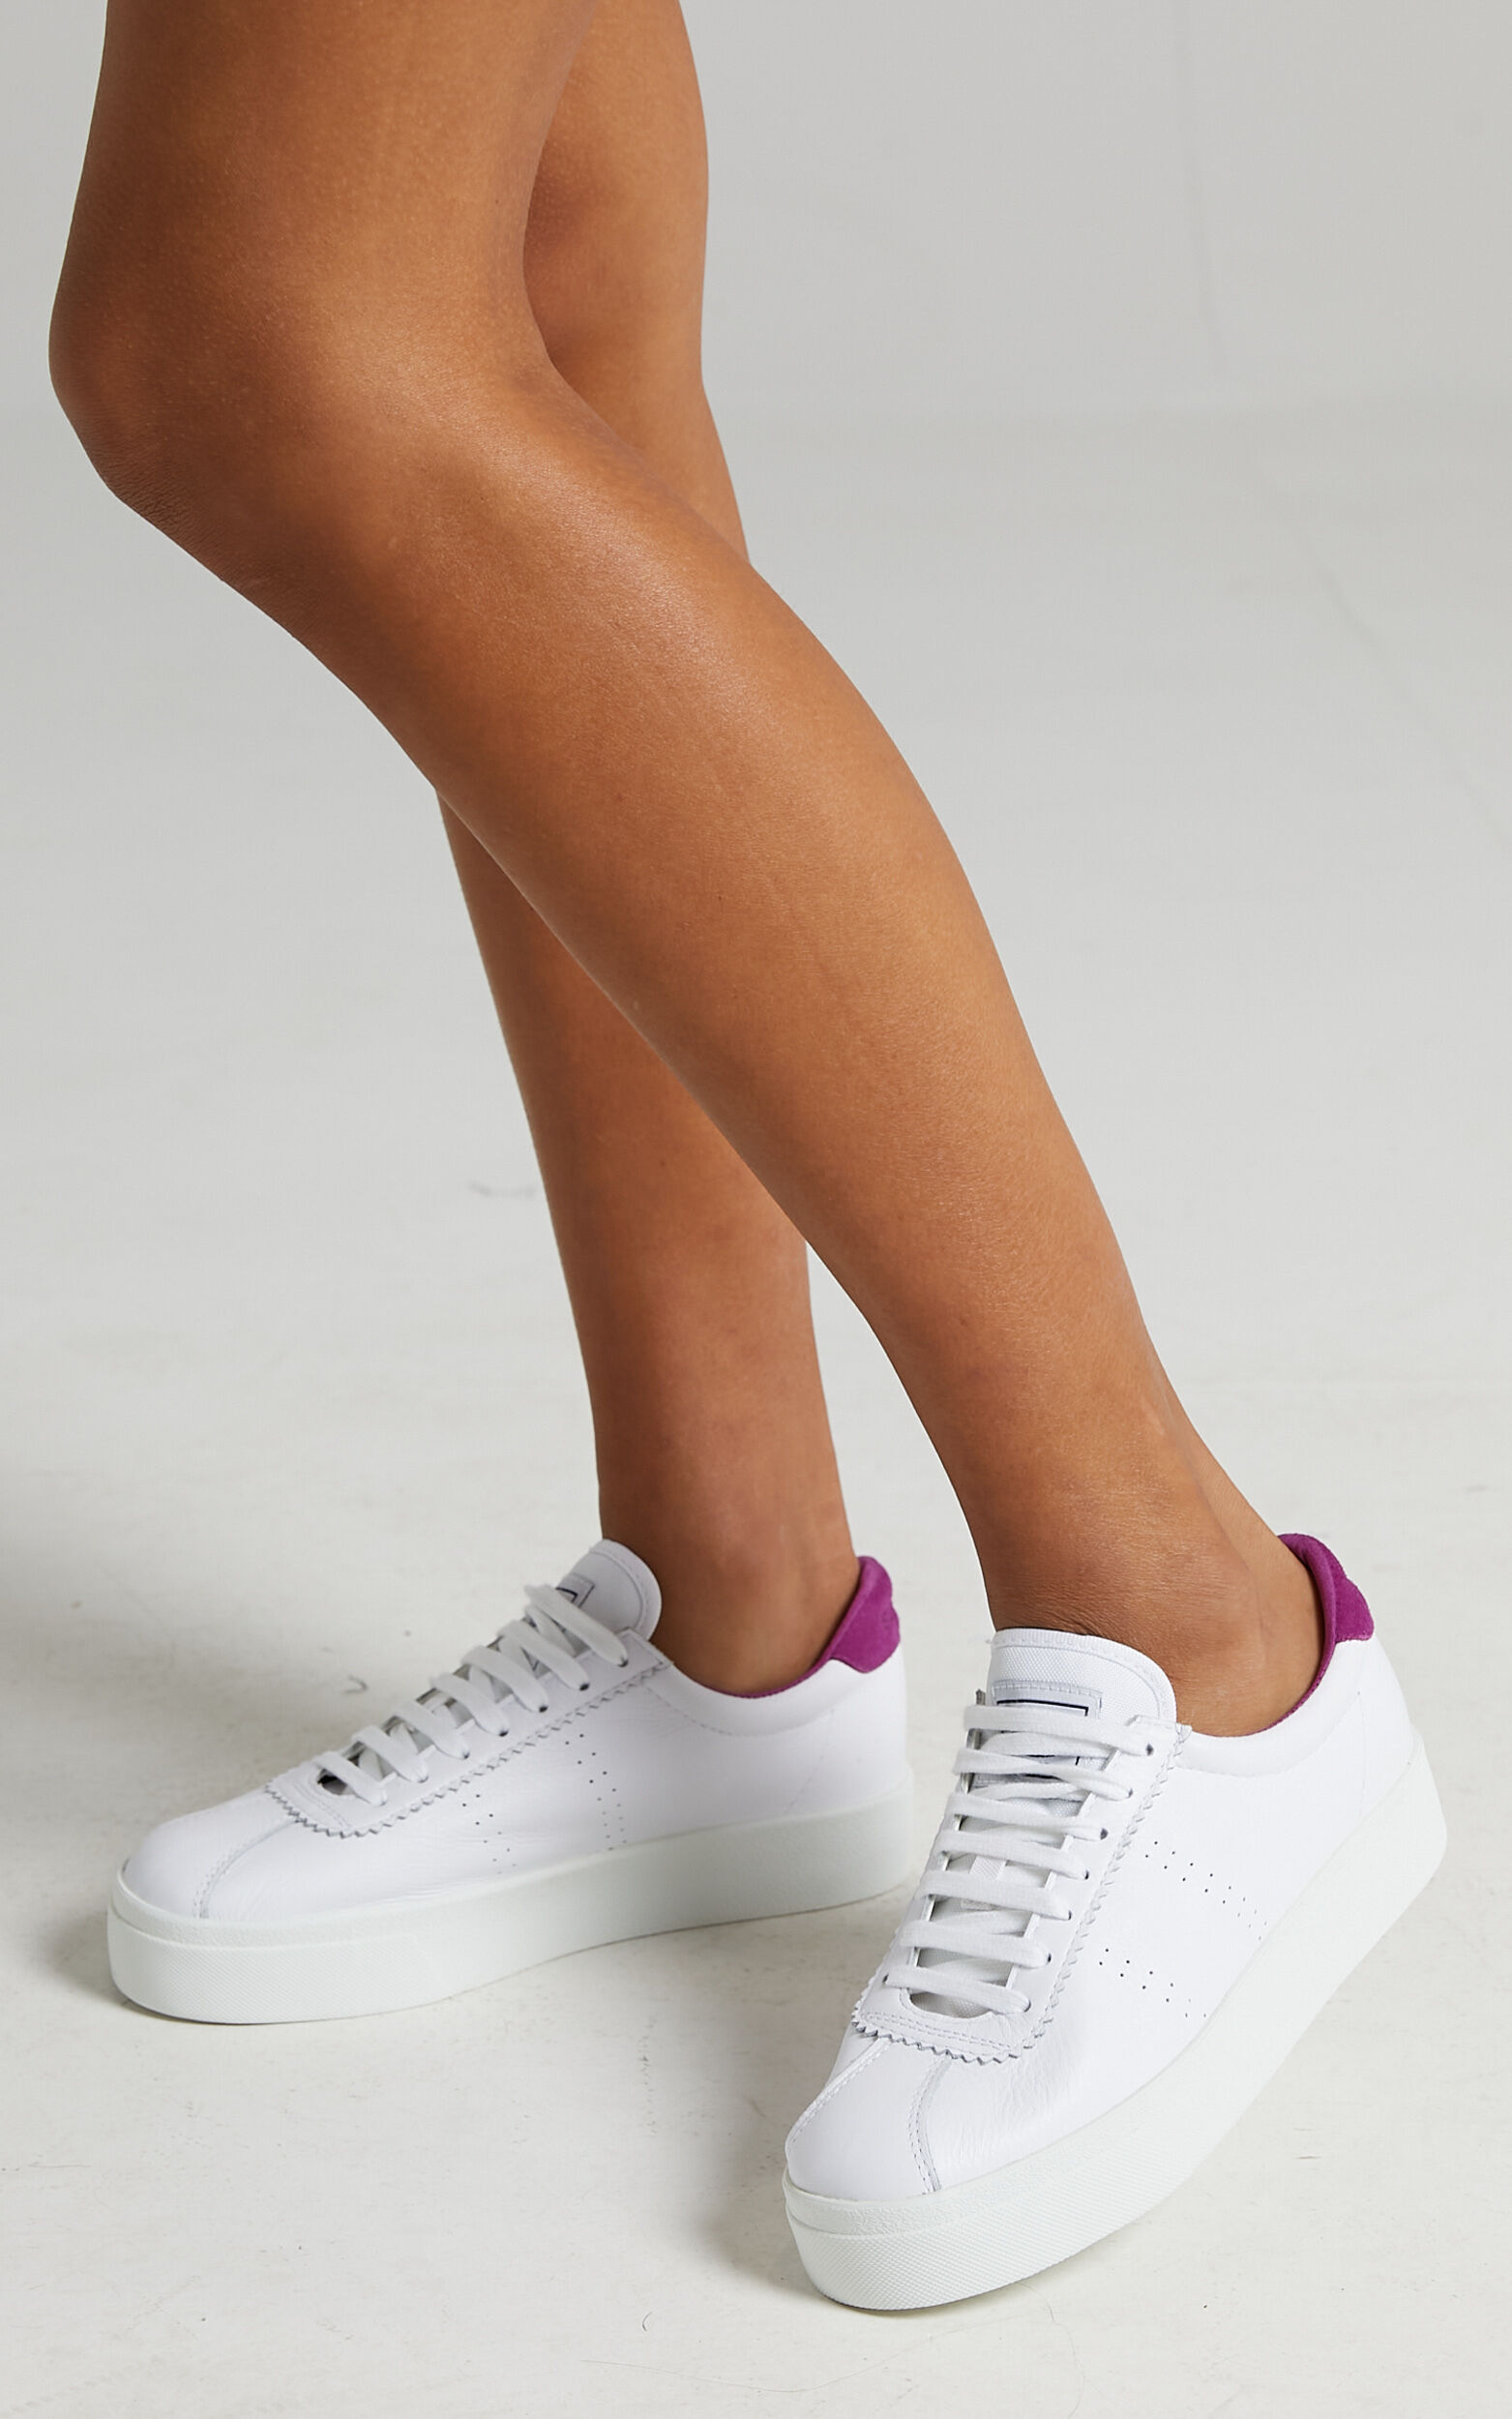 Superga - 2854 Club S 3 Leather Sneakers in White Fuchsia - 05, WHT1, super-hi-res image number null